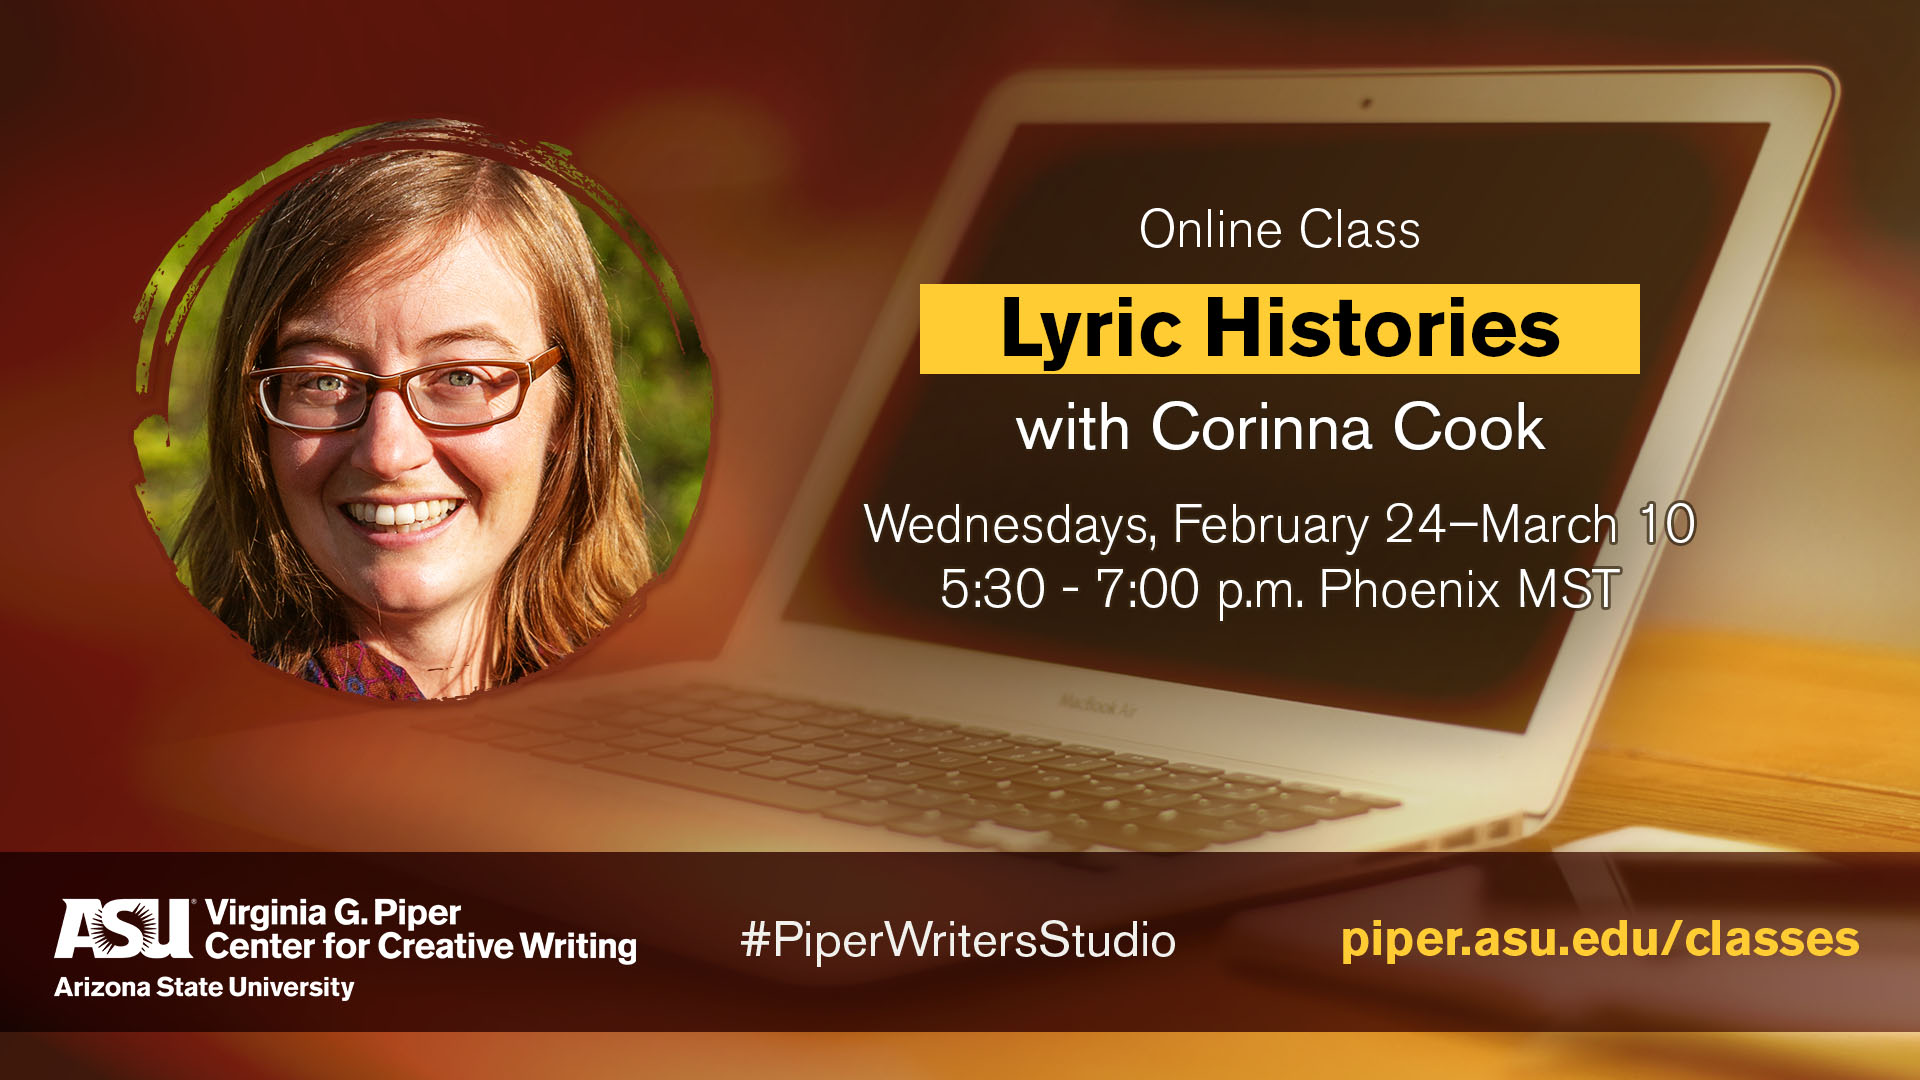 Lyric Histories – Piper Center for Creative Writing as ASU